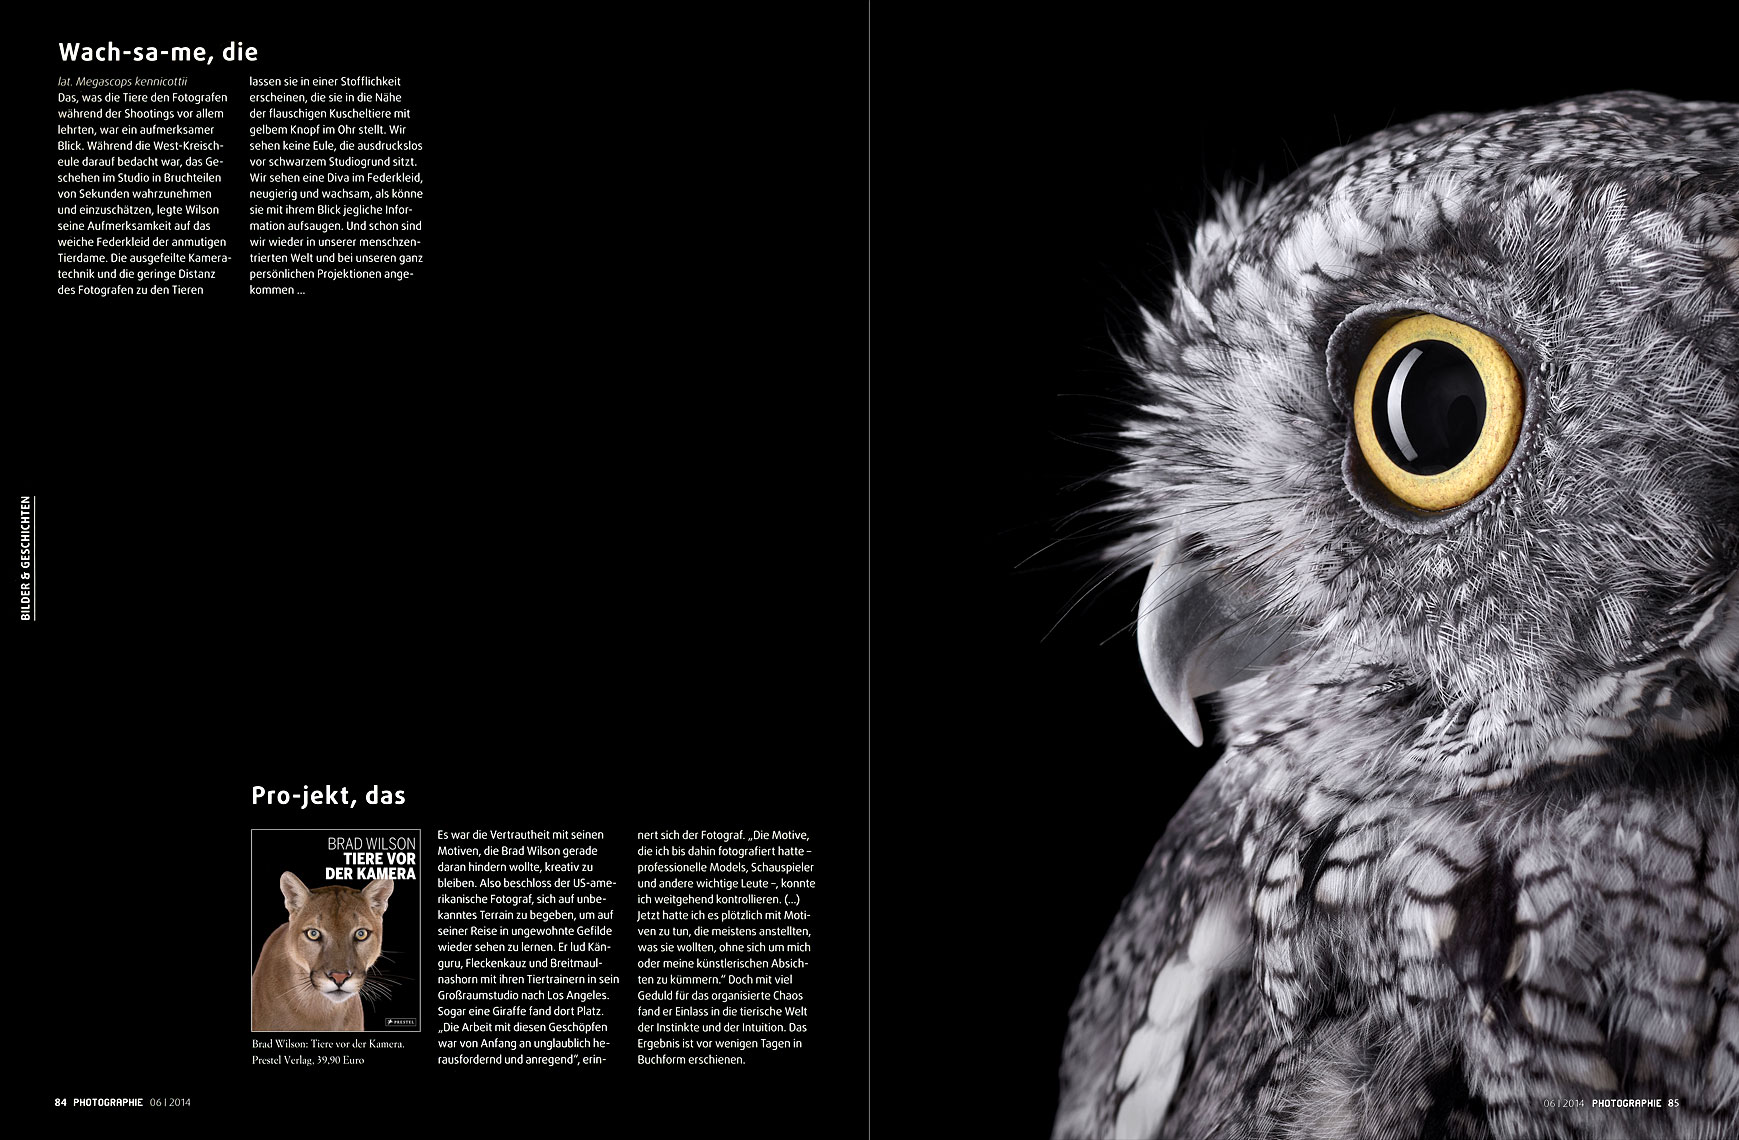 Photographie Magazine article about animal photographer Brad Wilson